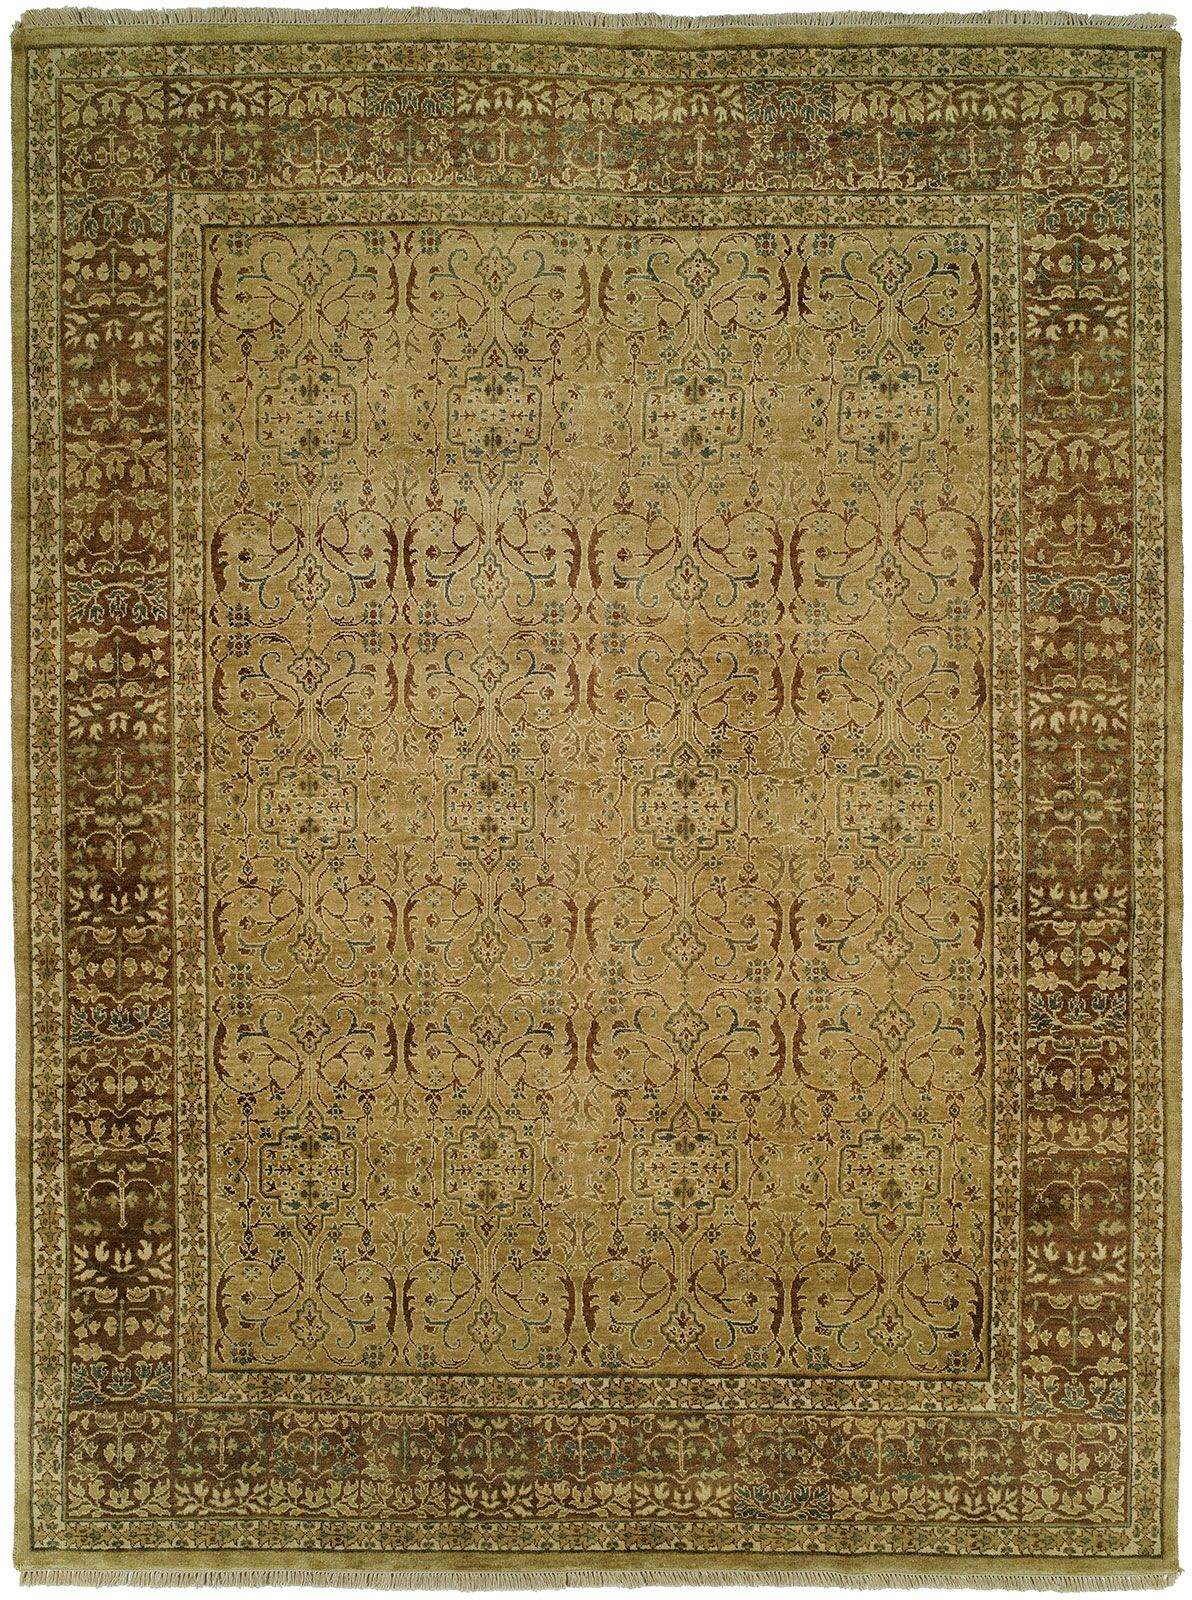 Mcmullin Hand Knotted Wool Tan/Brown Area Rug Rug Size: Runner 2'6